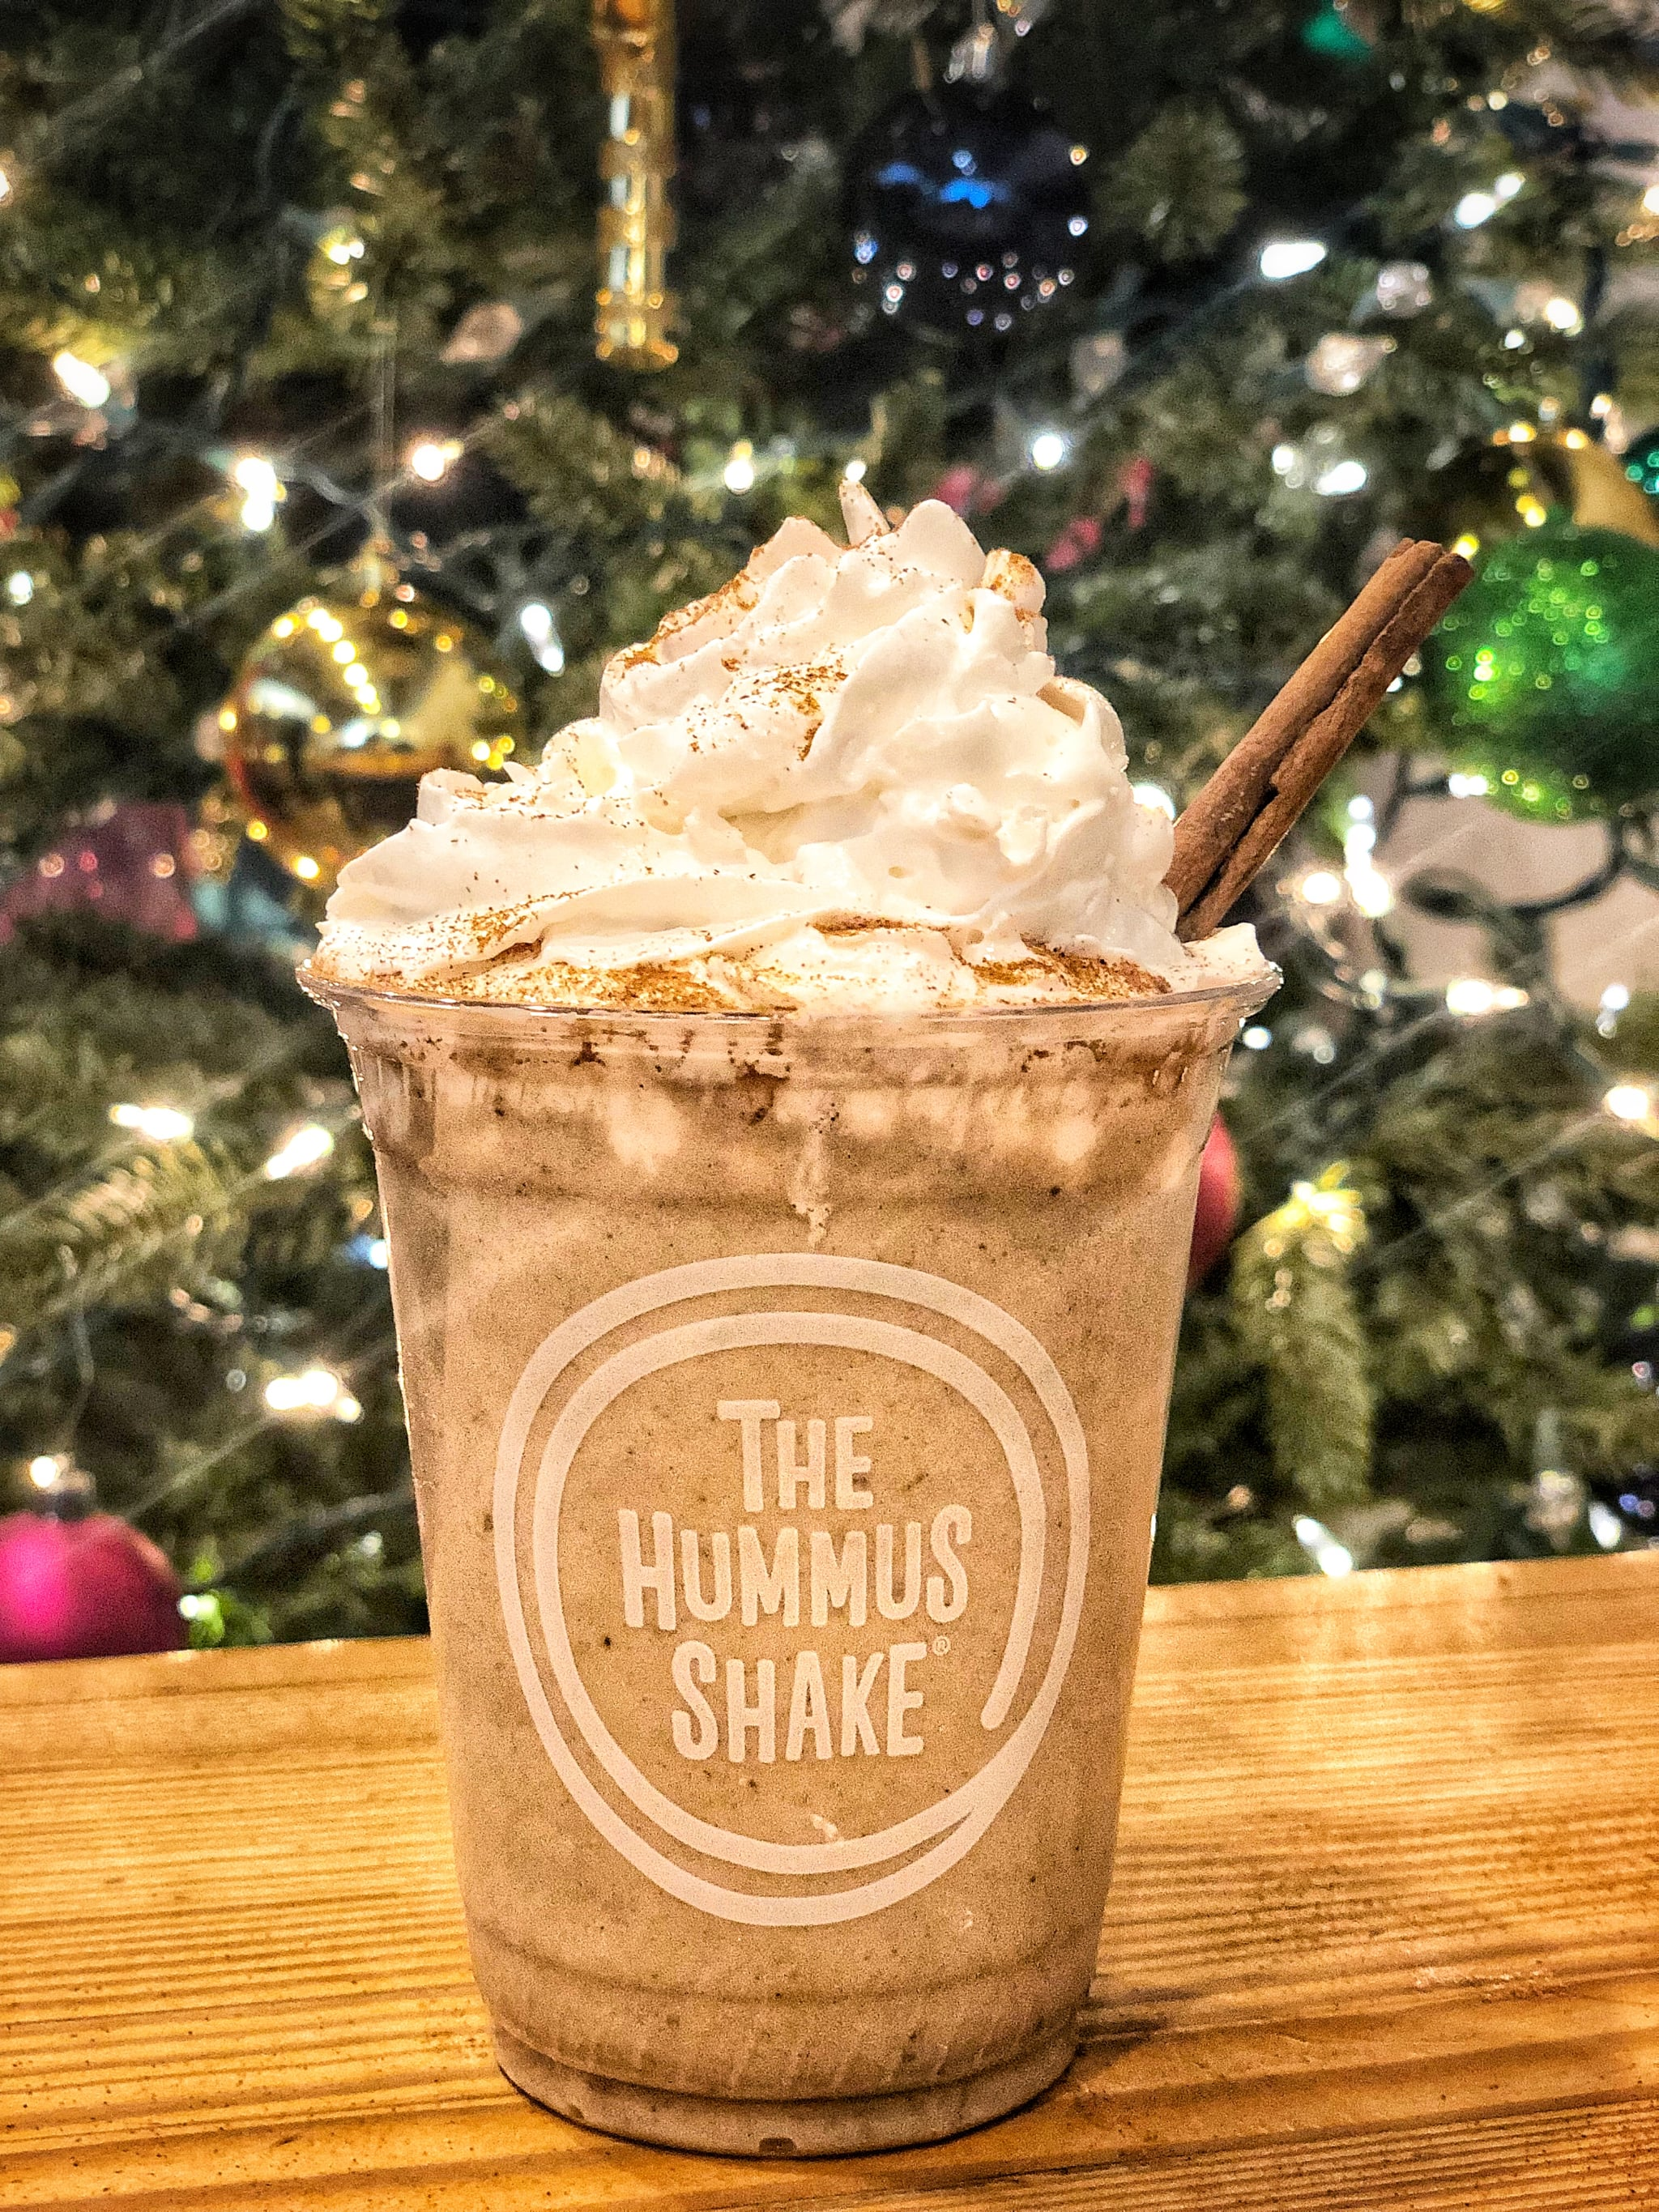 Eggnog Hummus Shakes Are Here For the Holidays, and Santa's Very Confused